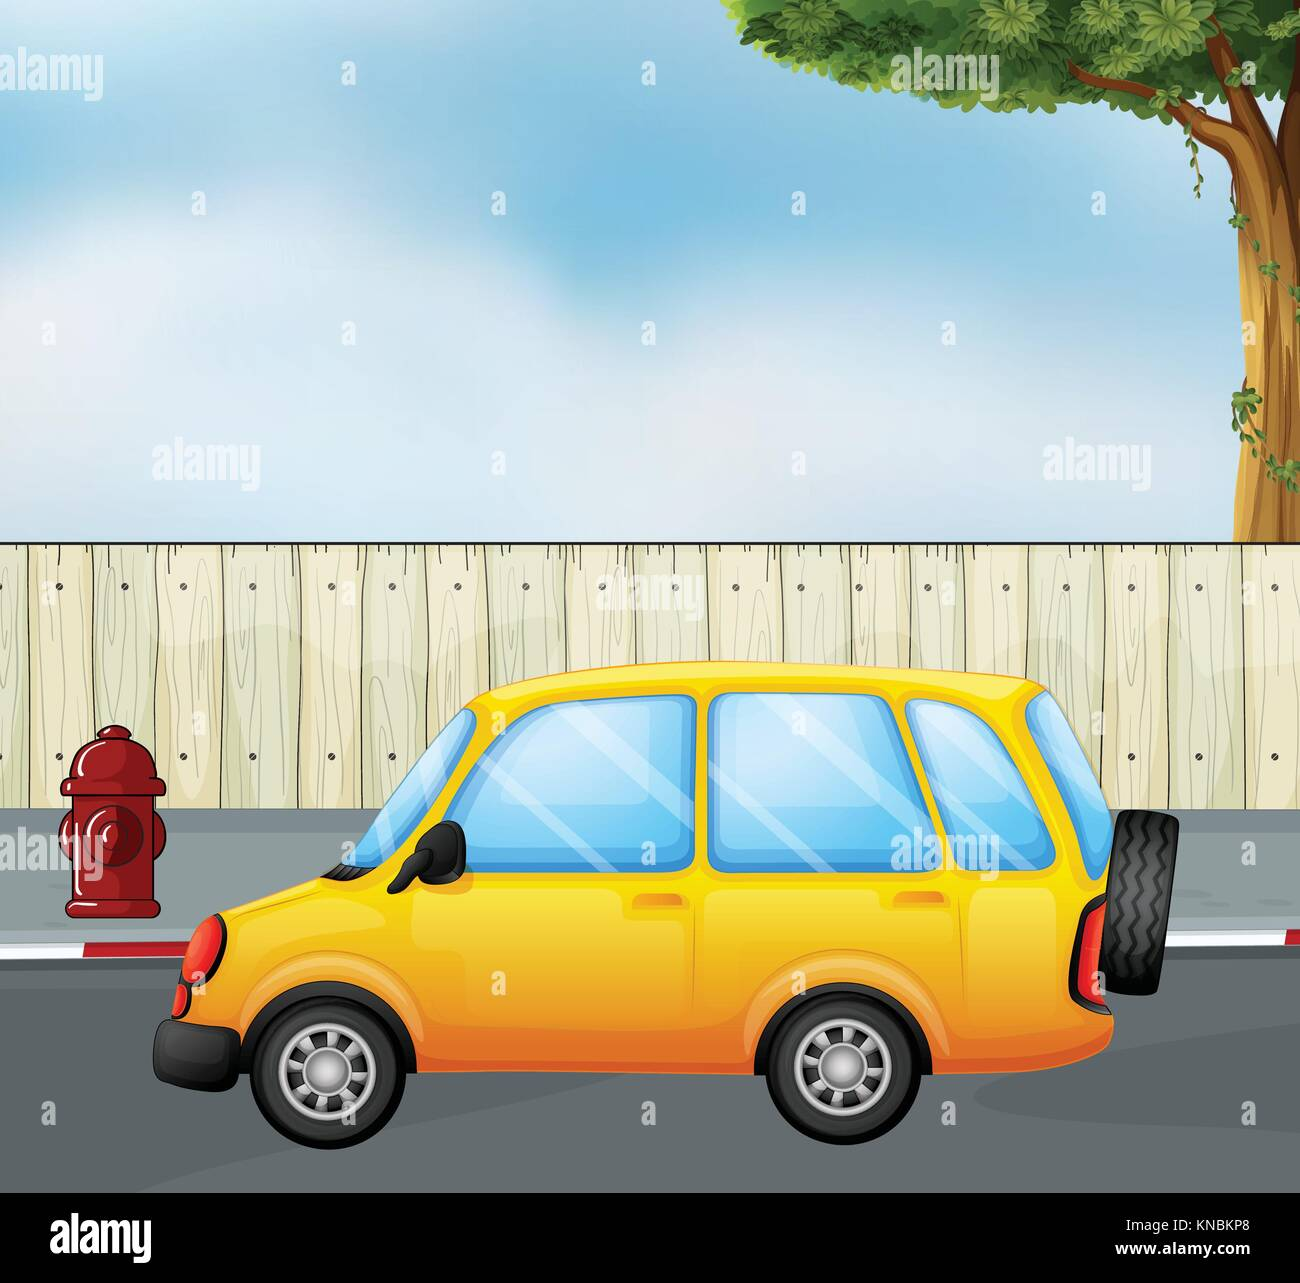 Illustration of a yellow car - Stock Vector